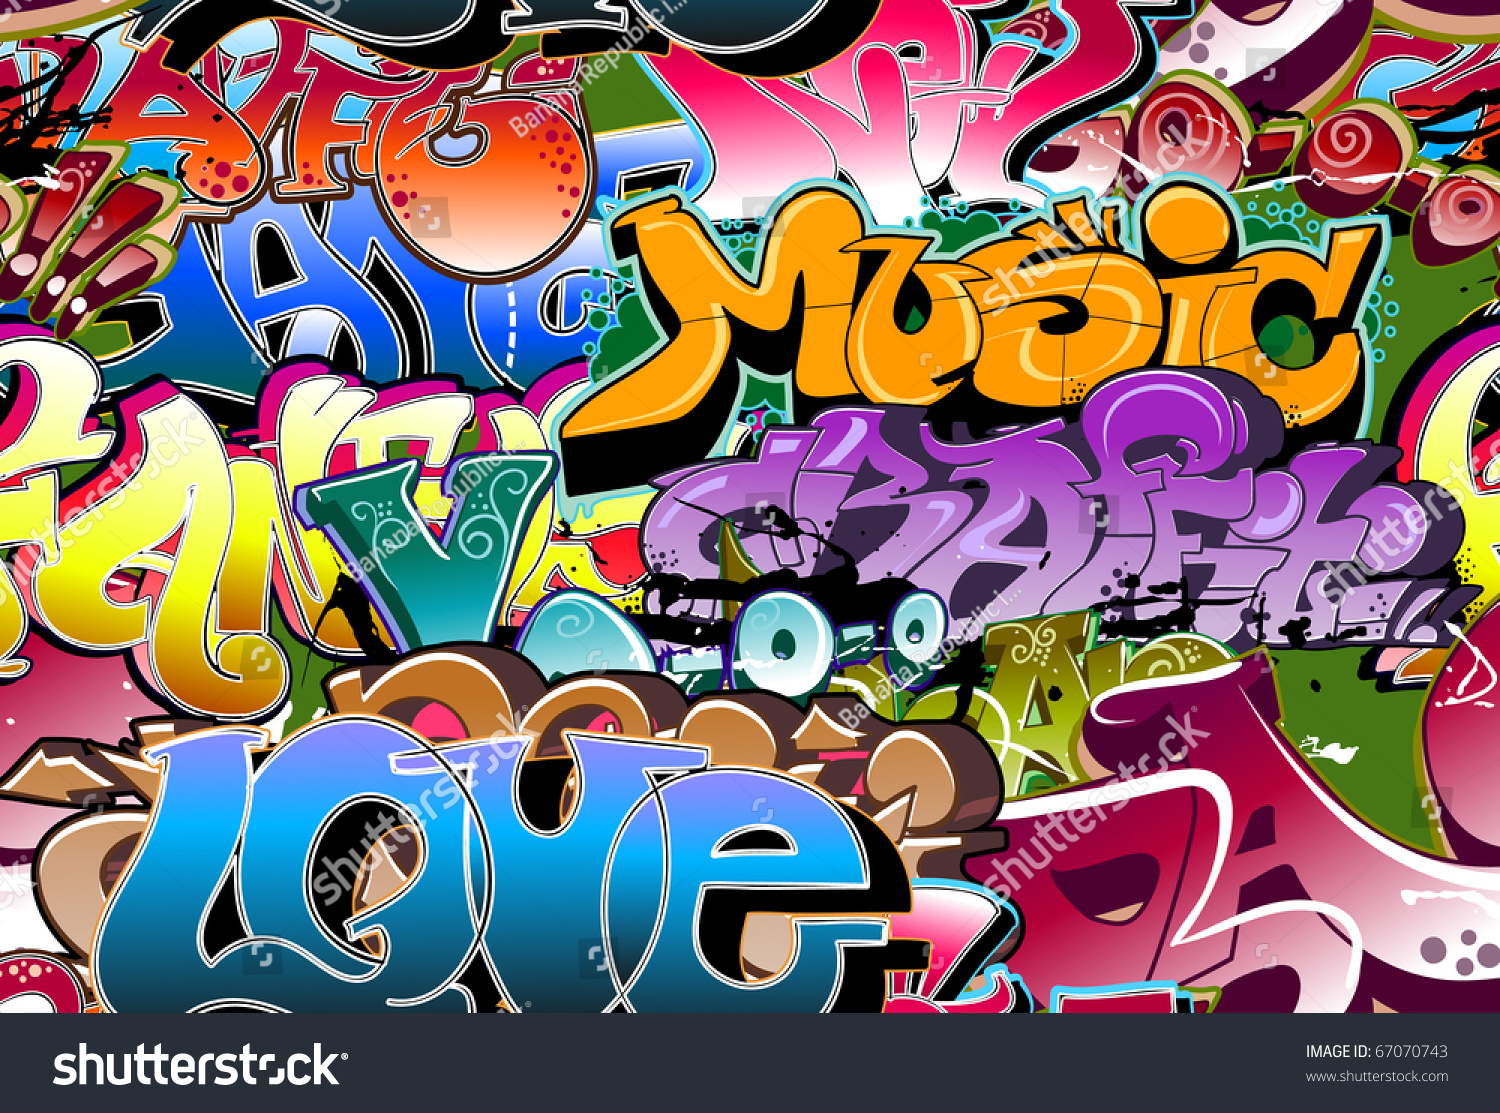 Grafitti wall background - Graffiti Urban Wall Background